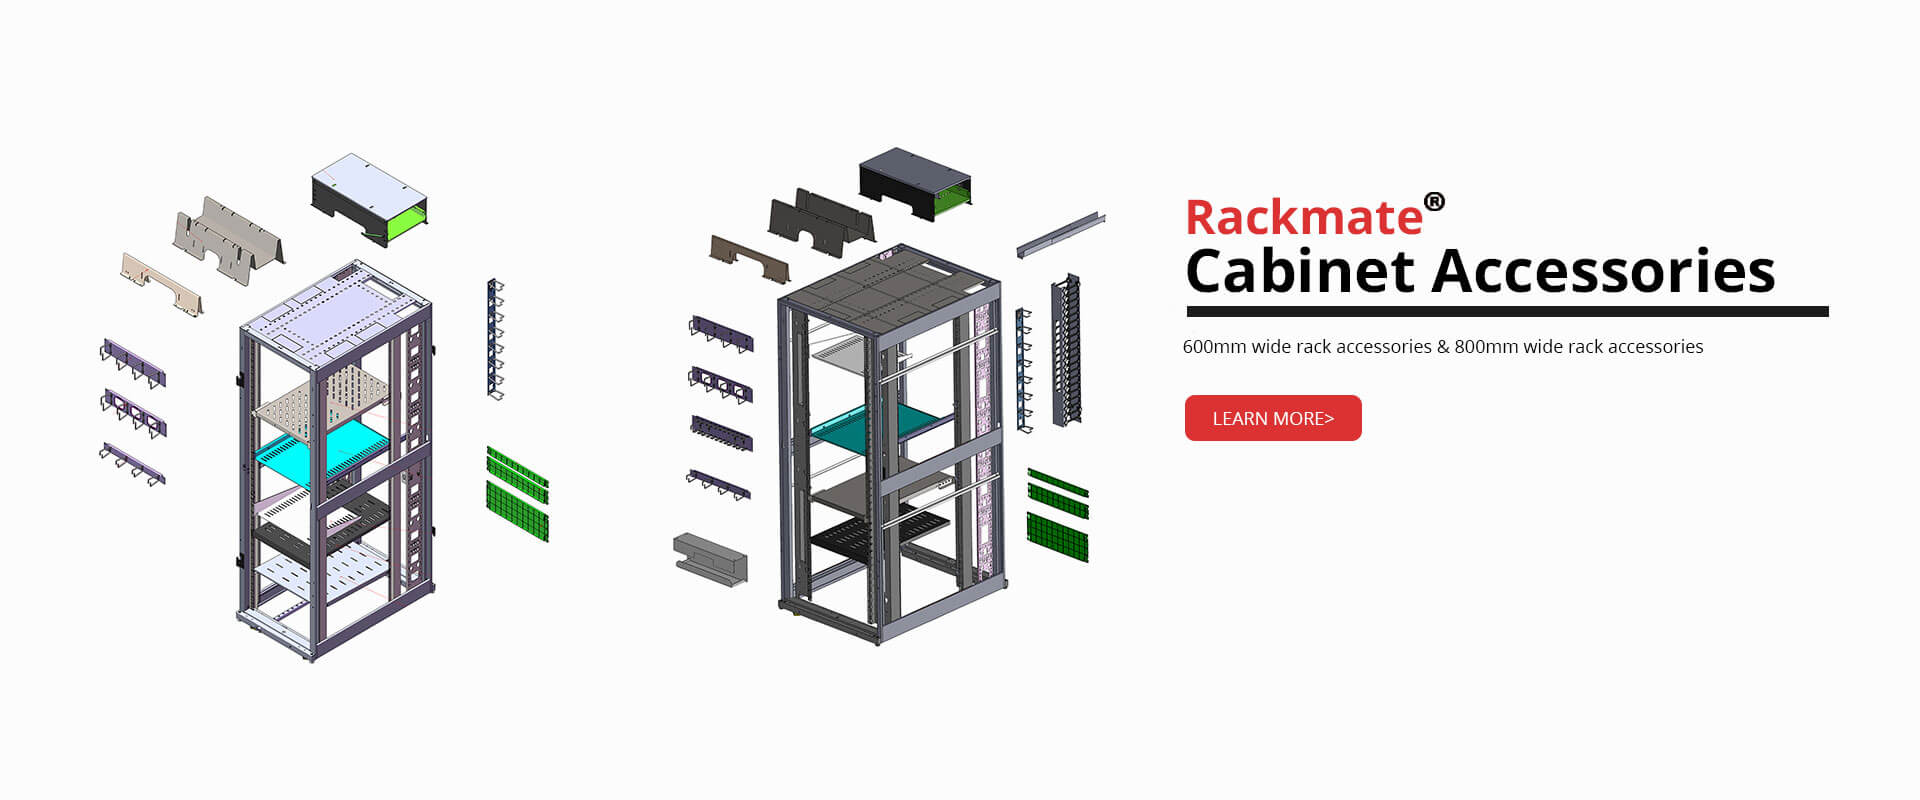 Rackmate Cabinet Accessories